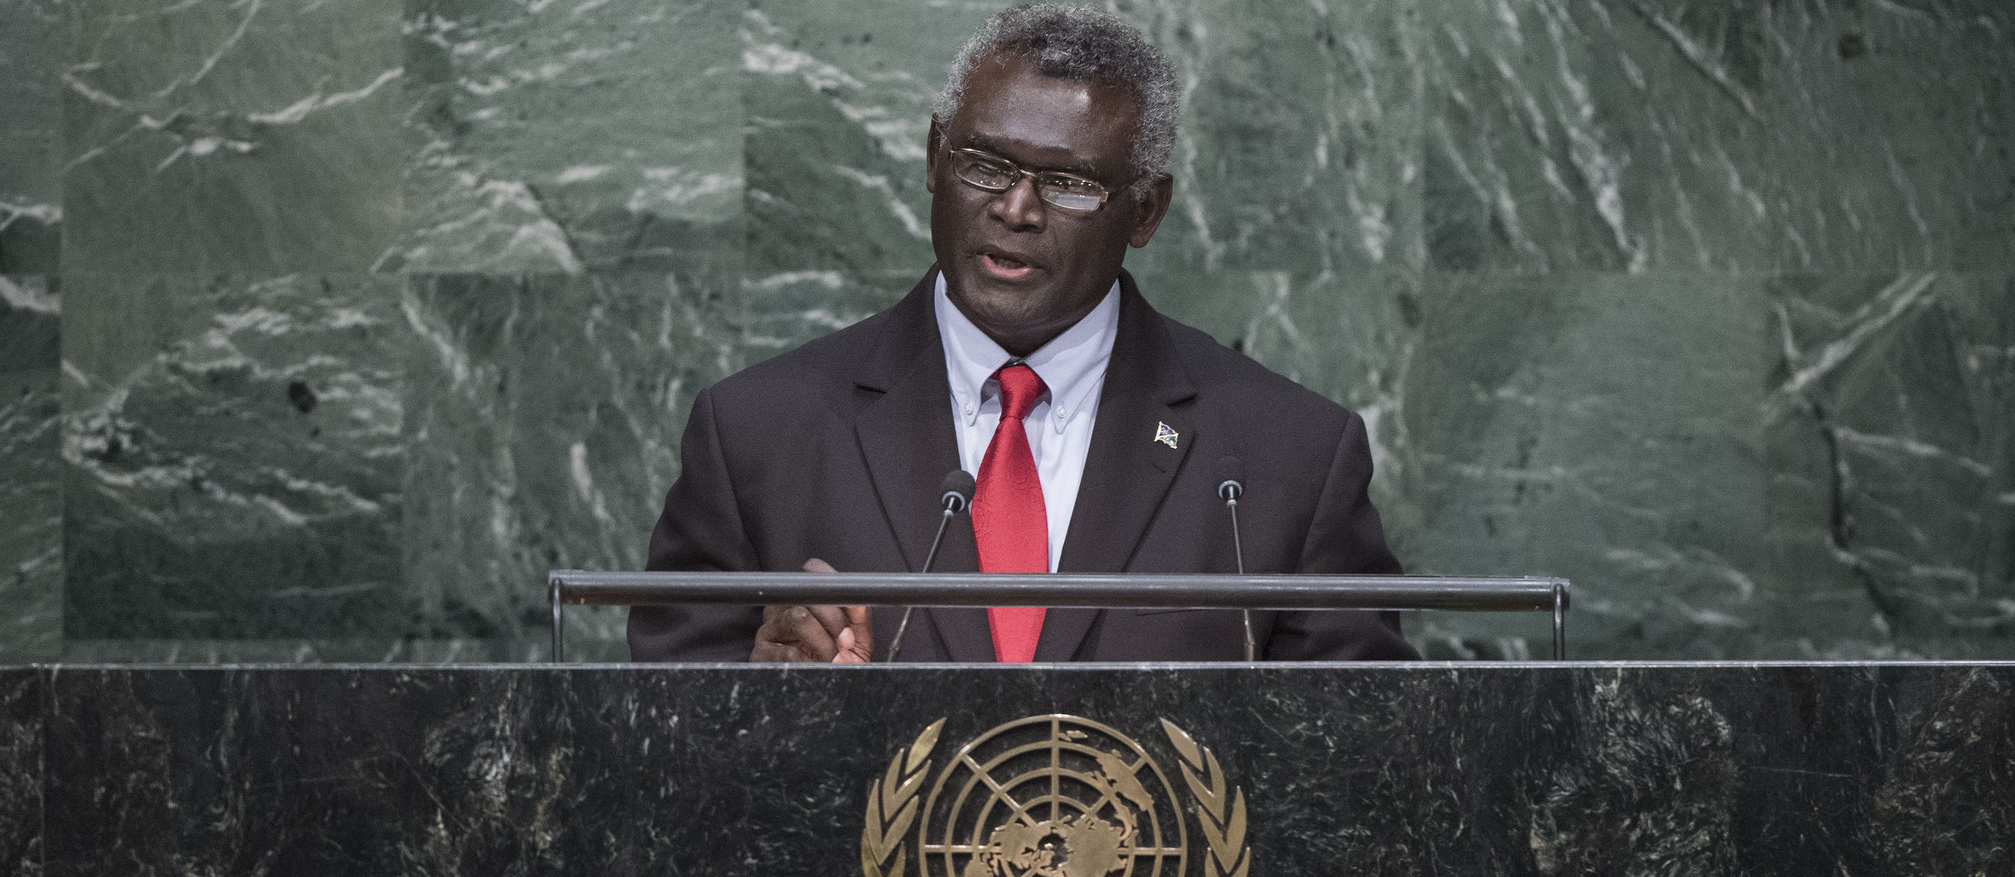 Manasseh Sogavare speaking at the United Nations, October 2015 (Photo: UN Photo/Flickr)